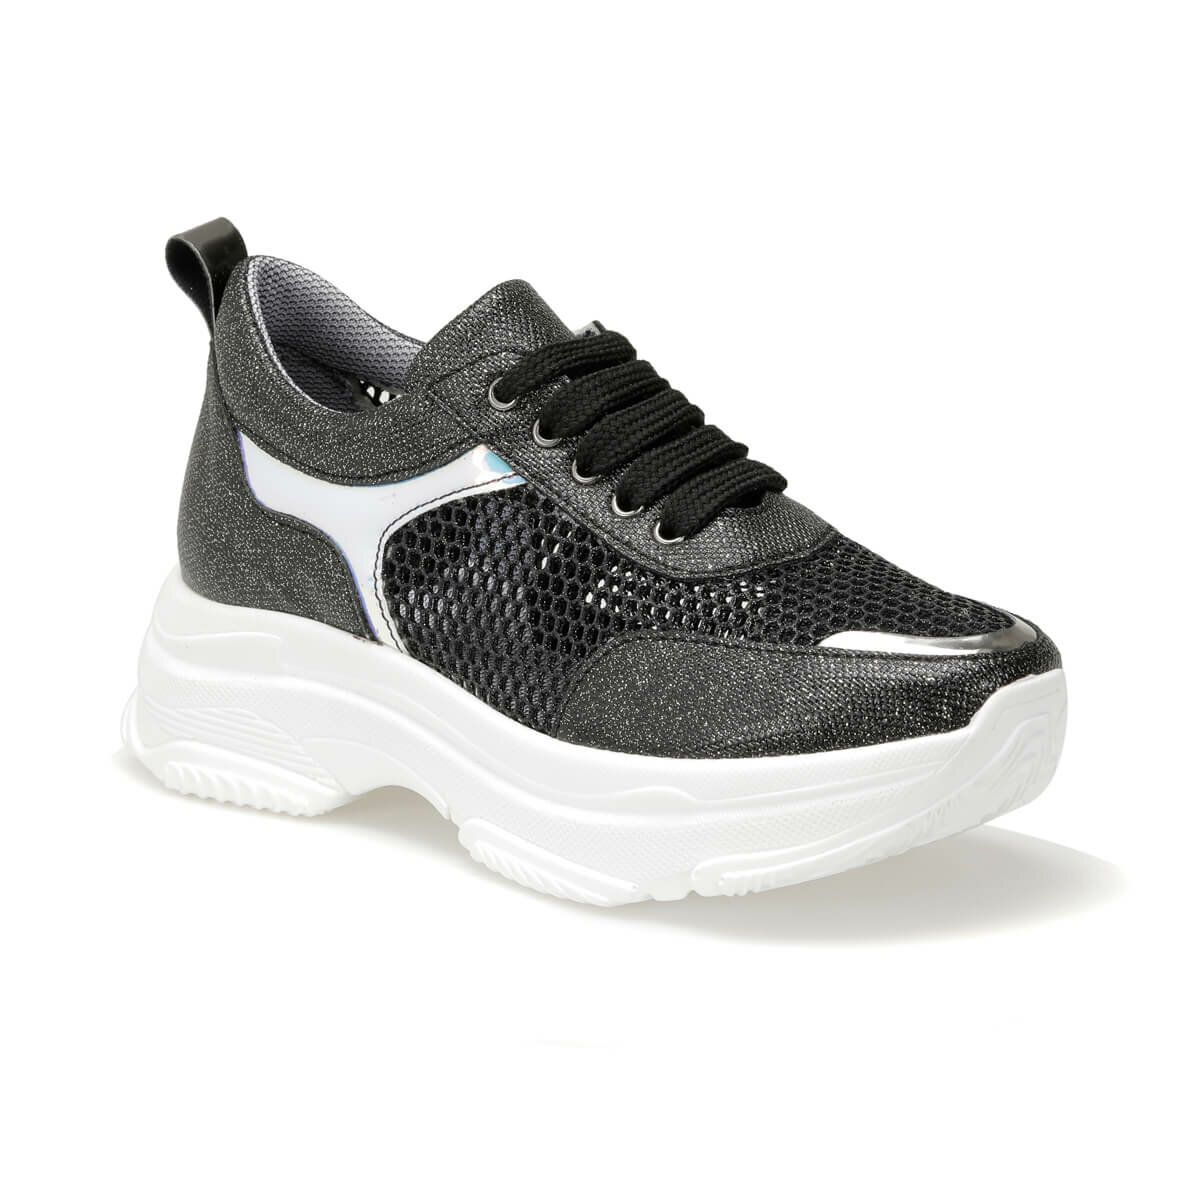 FLO 19SF-1503 Black Women Sneaker BUTIGO